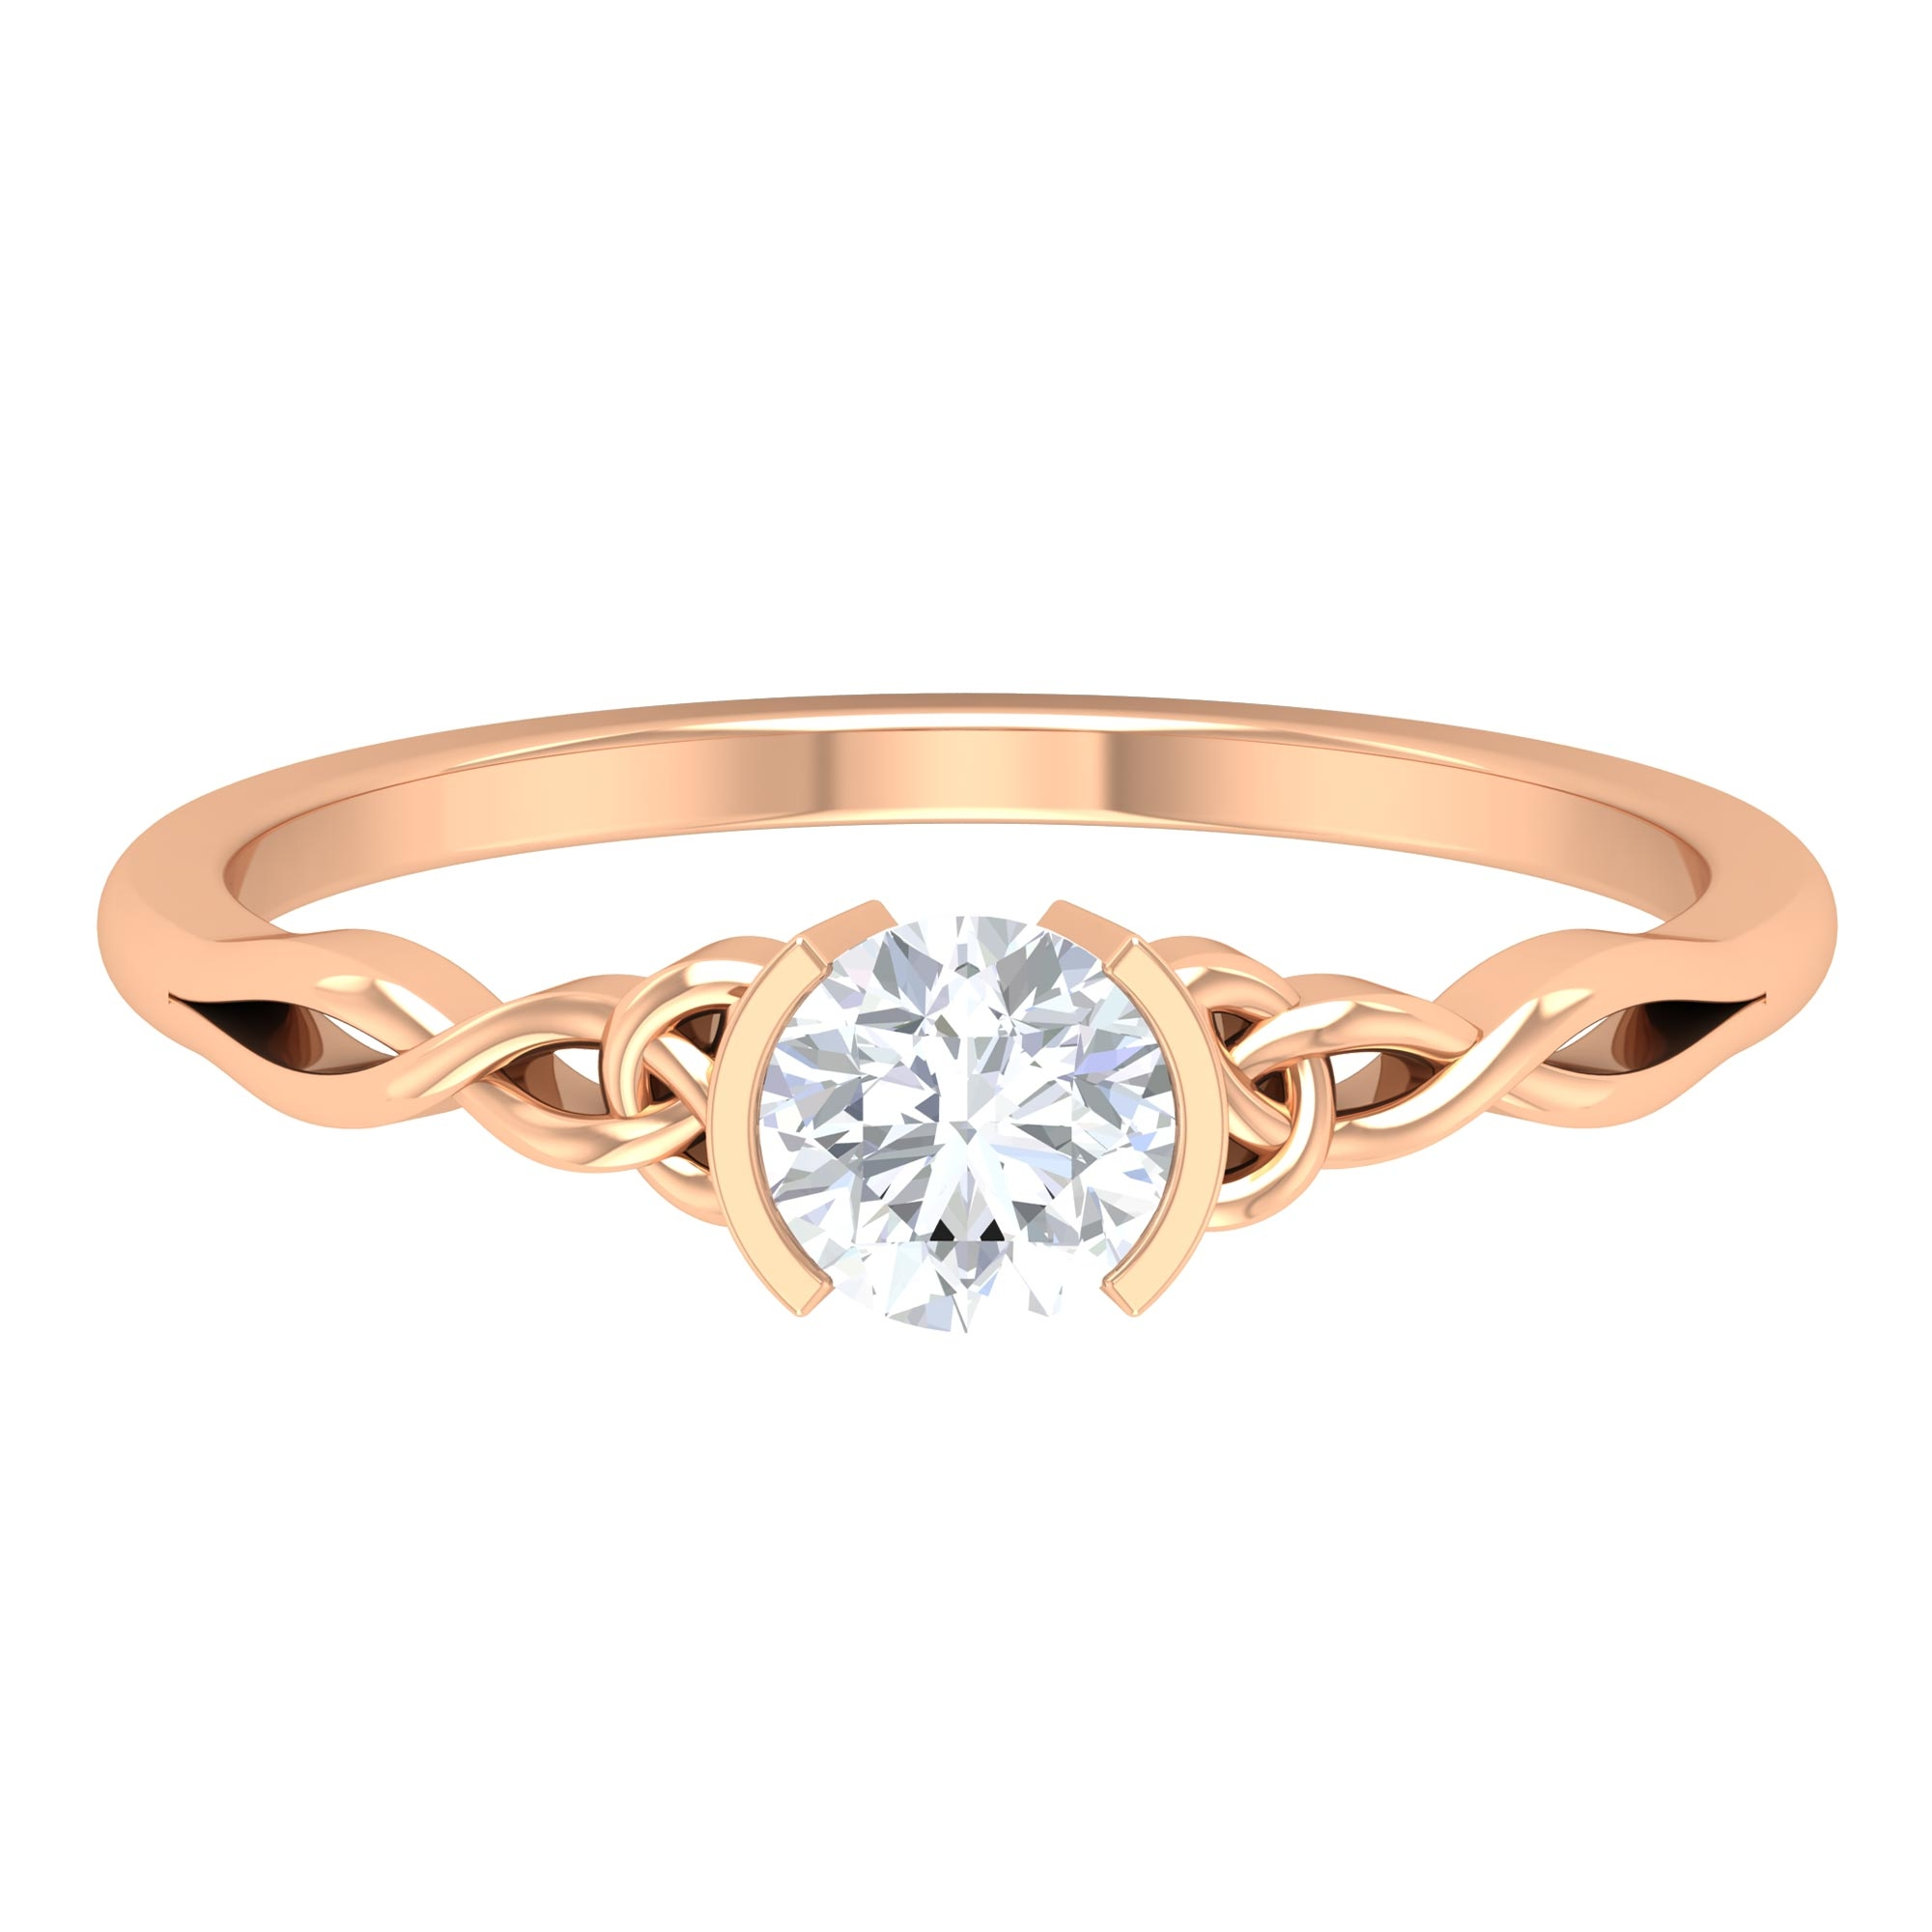 5 MM Round Cut Diamond Solitaire Ring in Half Bezel Setting with Celtic Details